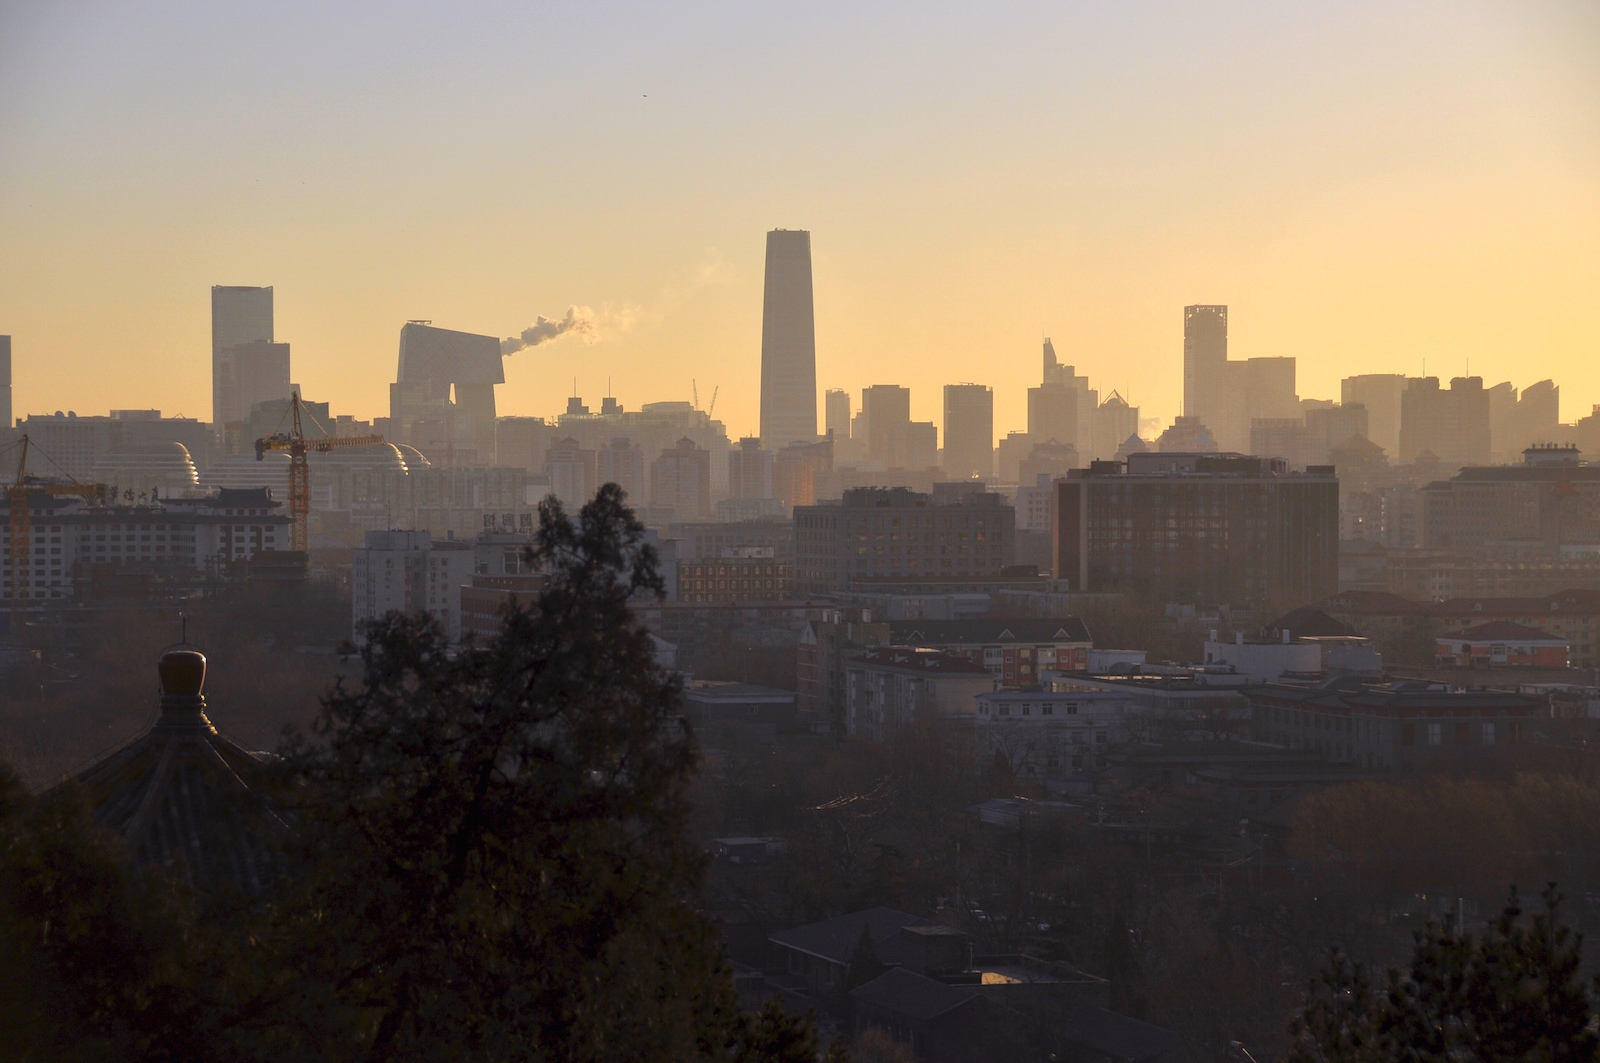 [Image description: photograph of the Beijing skyline at sunrise. The foreground is shadowy, and filled with trees and smaller traditional buildings. The background is bright, with skyscrapers and plumes of smoke.]  faungg's photos / Creative Commons